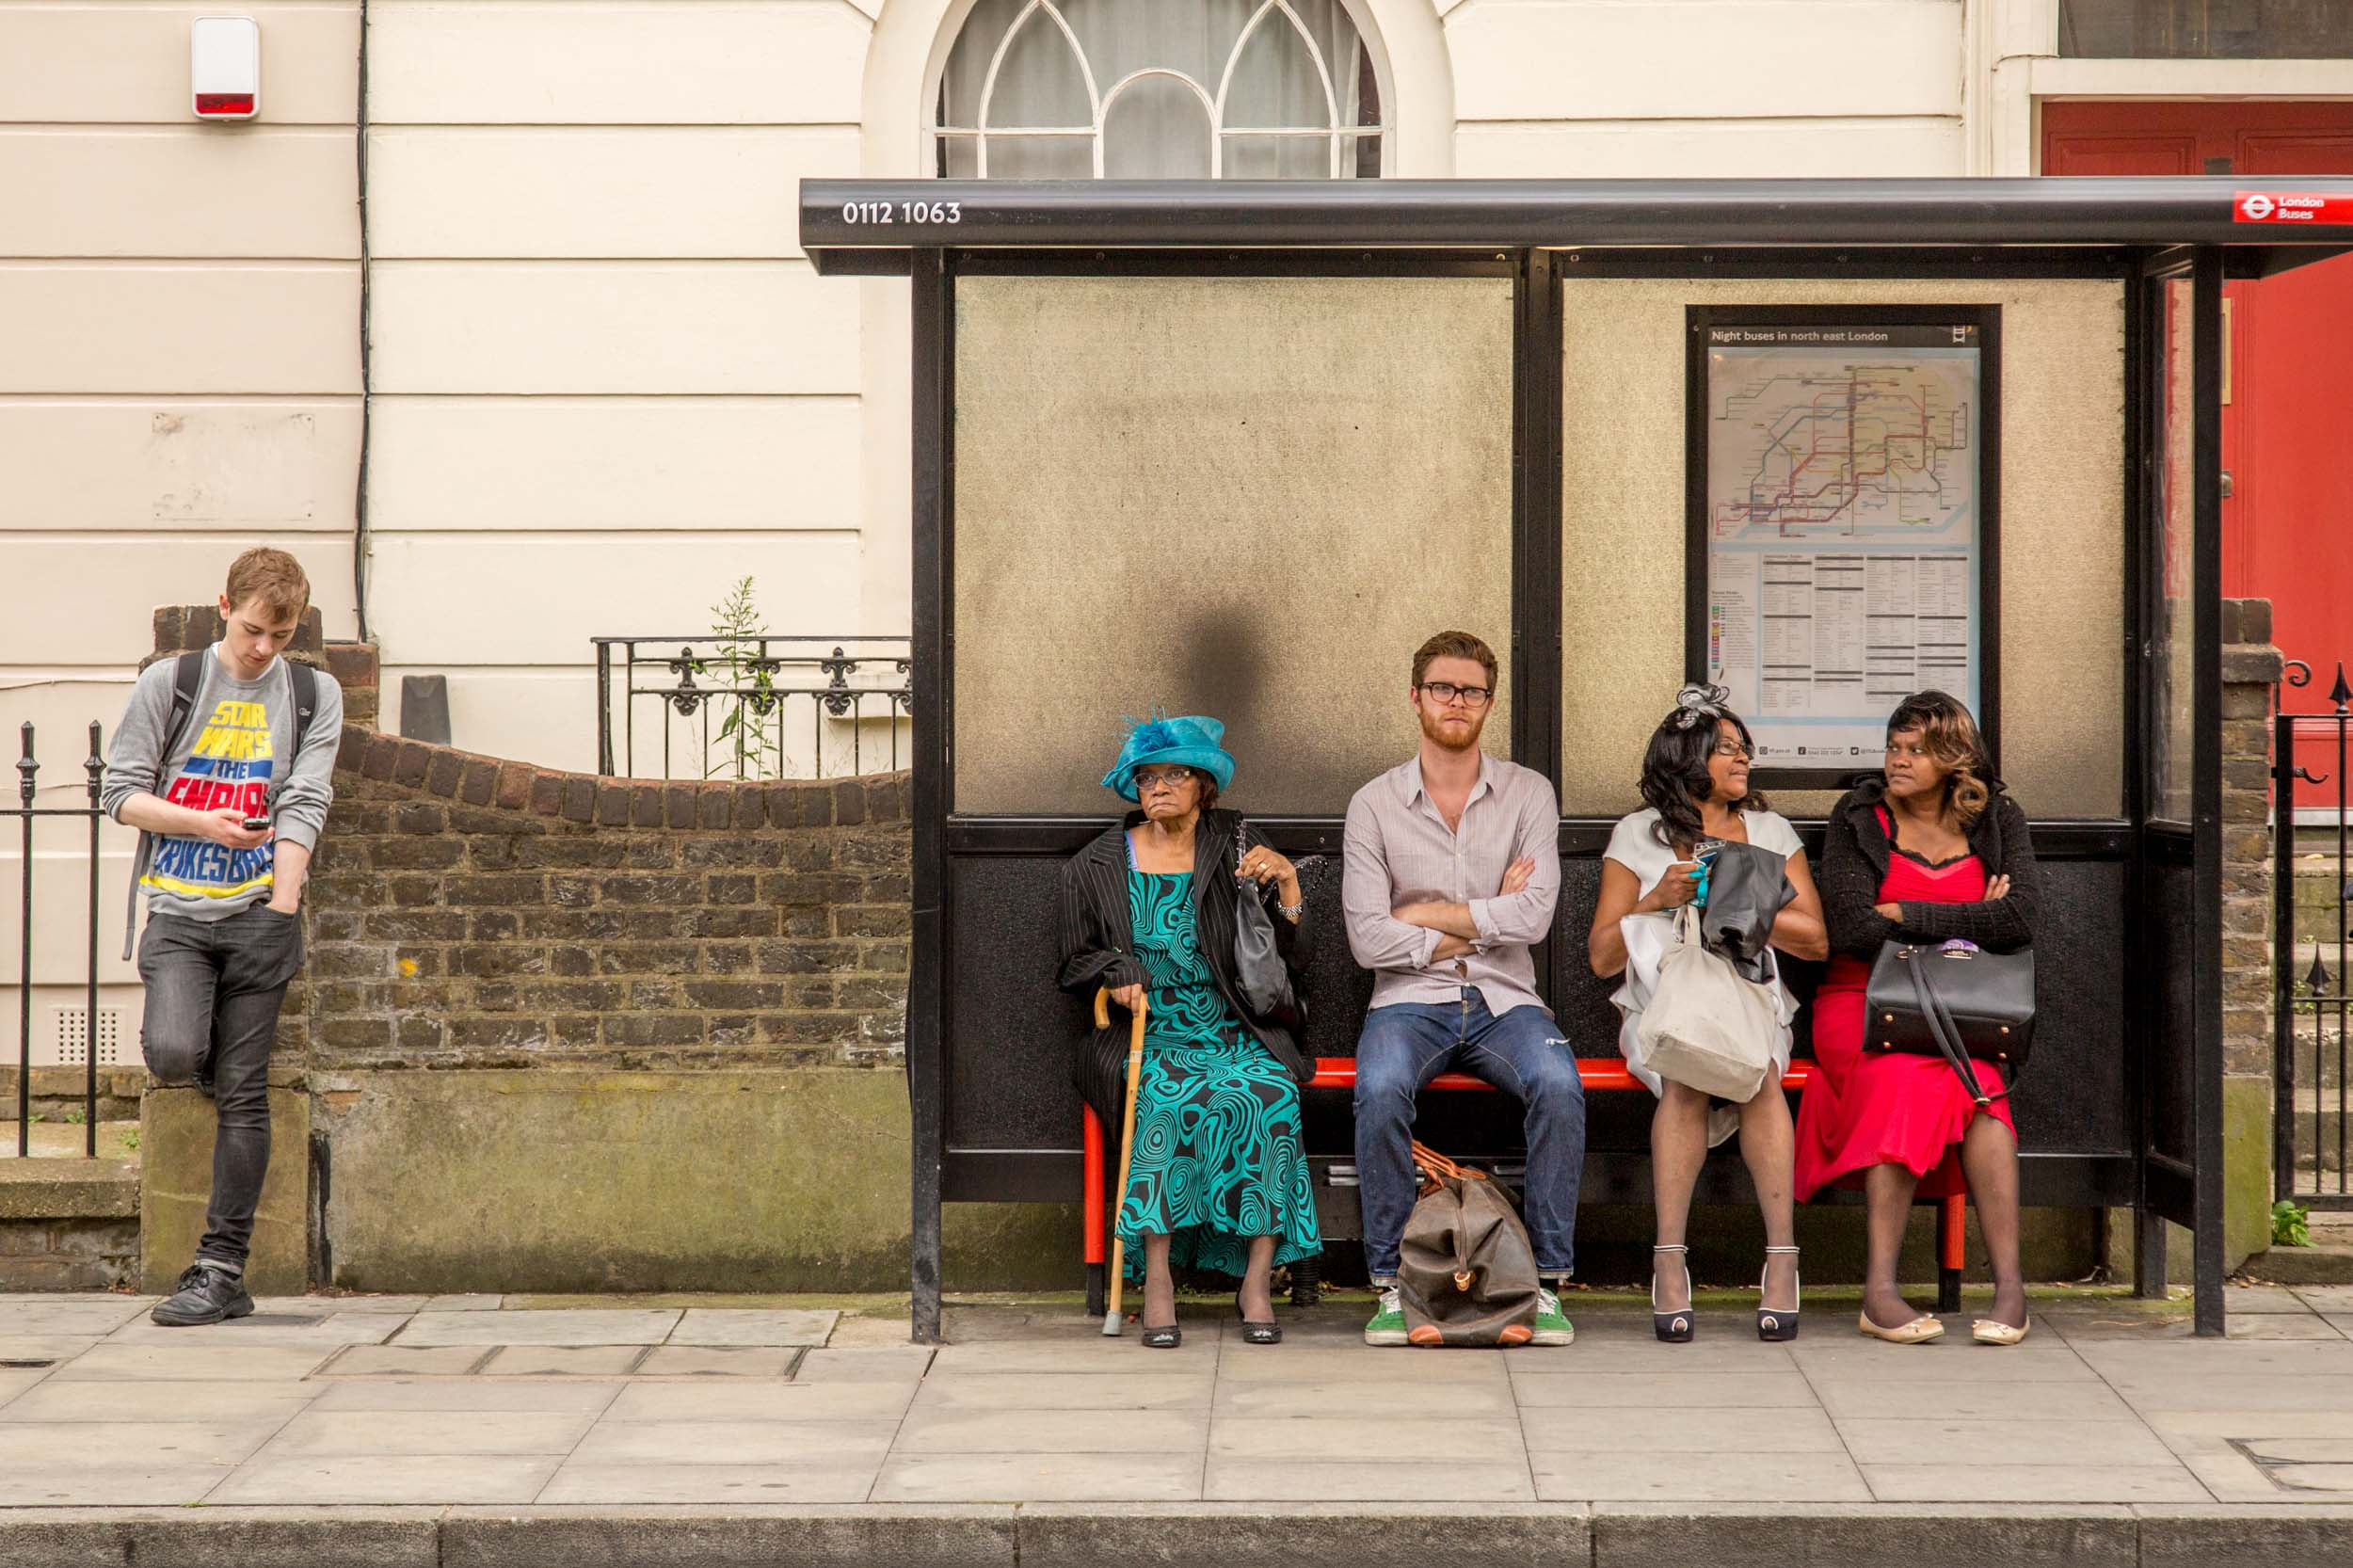 Church Street Bus Stop, London 2014